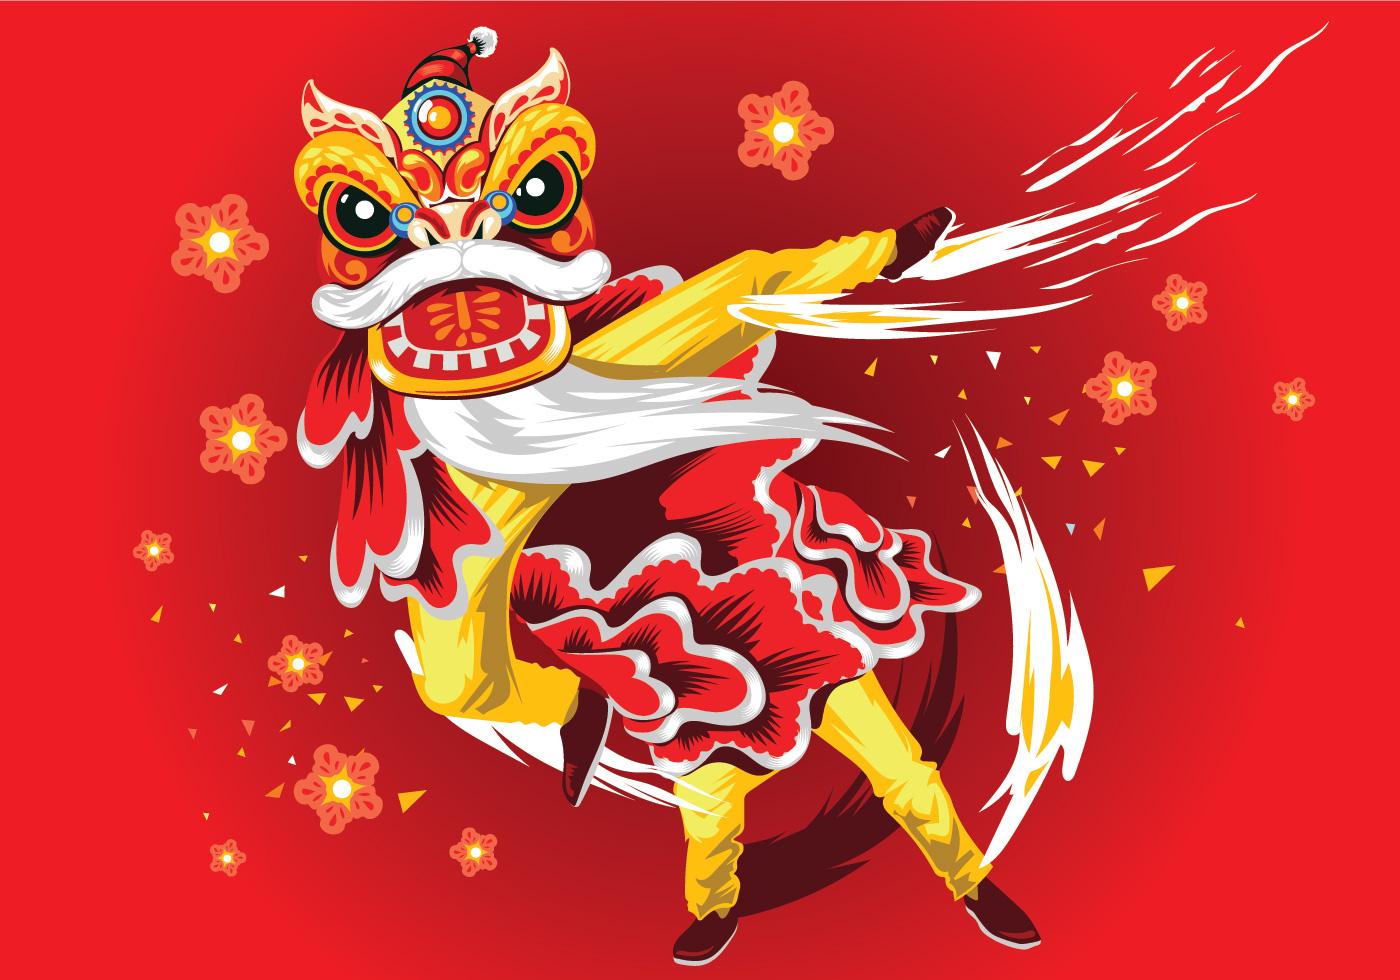 449a31e0b Chinese New Year Card with Plum Blossom and Lion Dance Vector - Download  Free Vector Art, Stock Graphics & Images